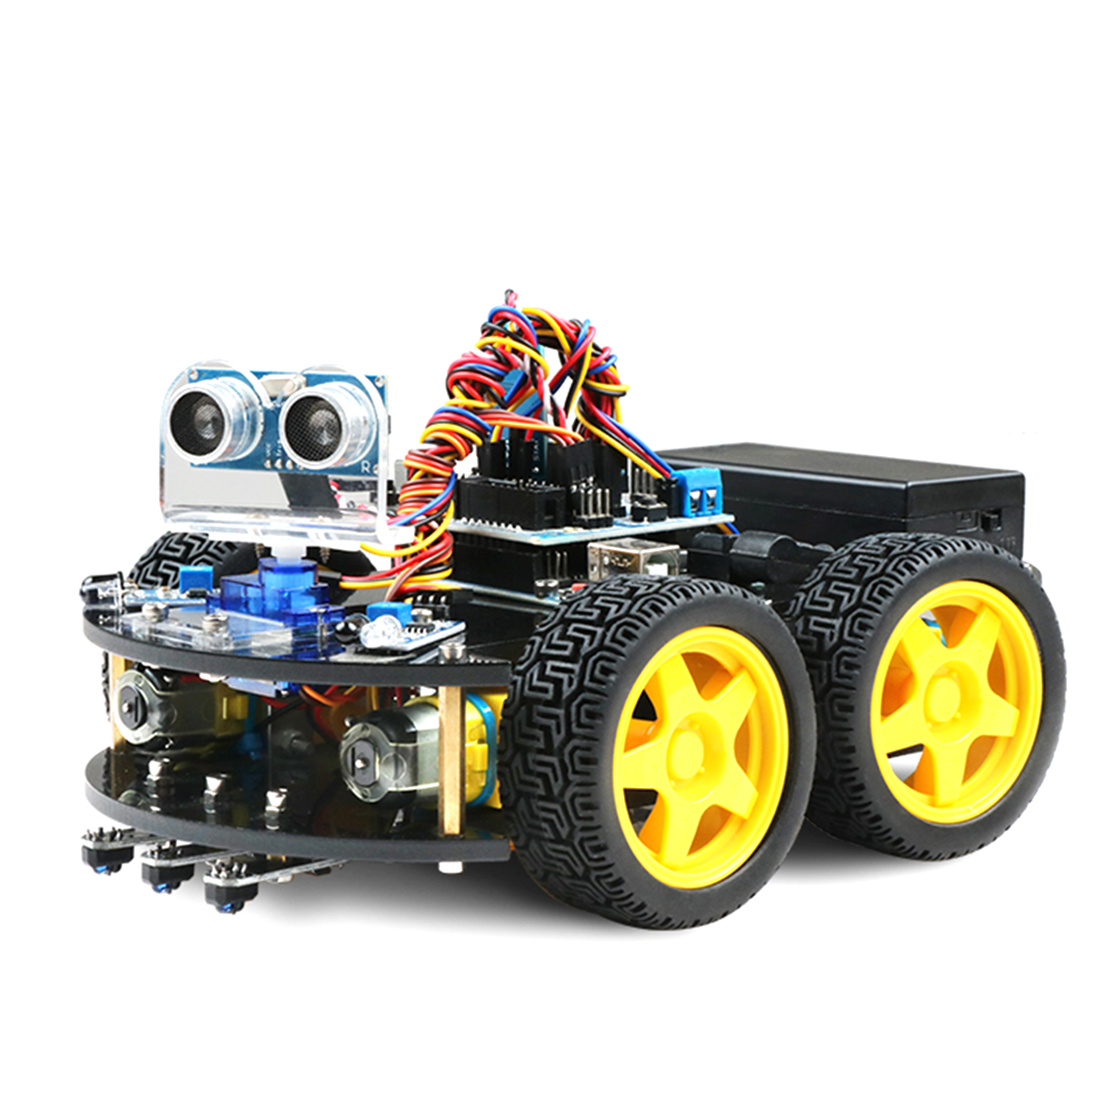 DIY Obstacle Avoidance Smart Programmable Robot Car Educational Learning Kit For BLE For UNO